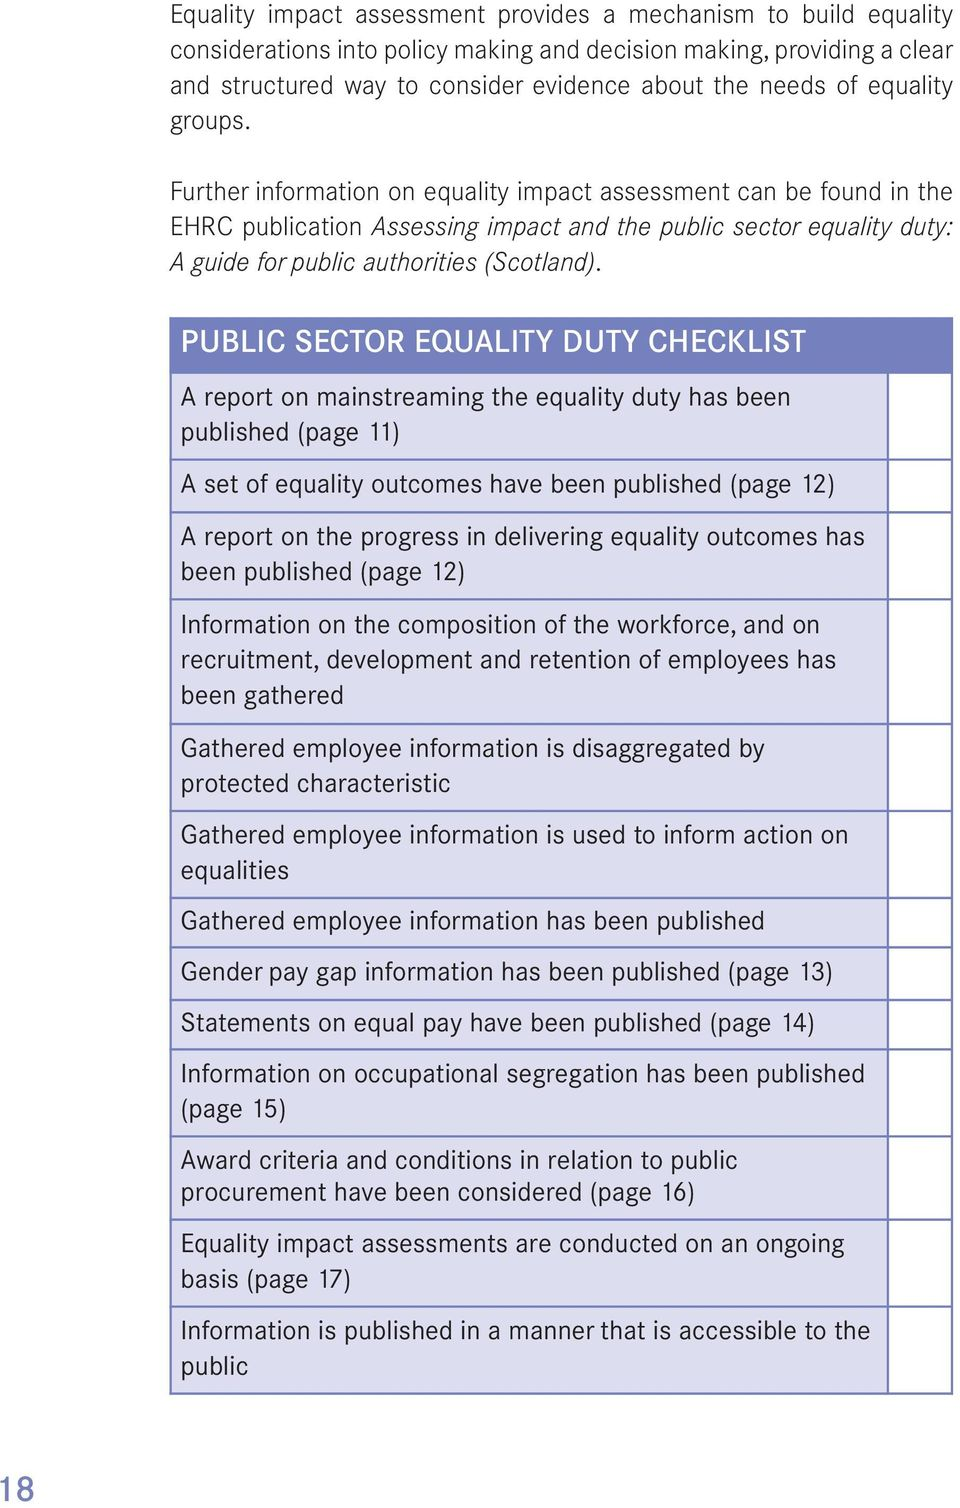 PUBLIC SECTOR EQUALITY DUTY CHECKLIST A report on mainstreaming the equality duty has been published (page 11) A set of equality outcomes have been published (page 12) A report on the progress in